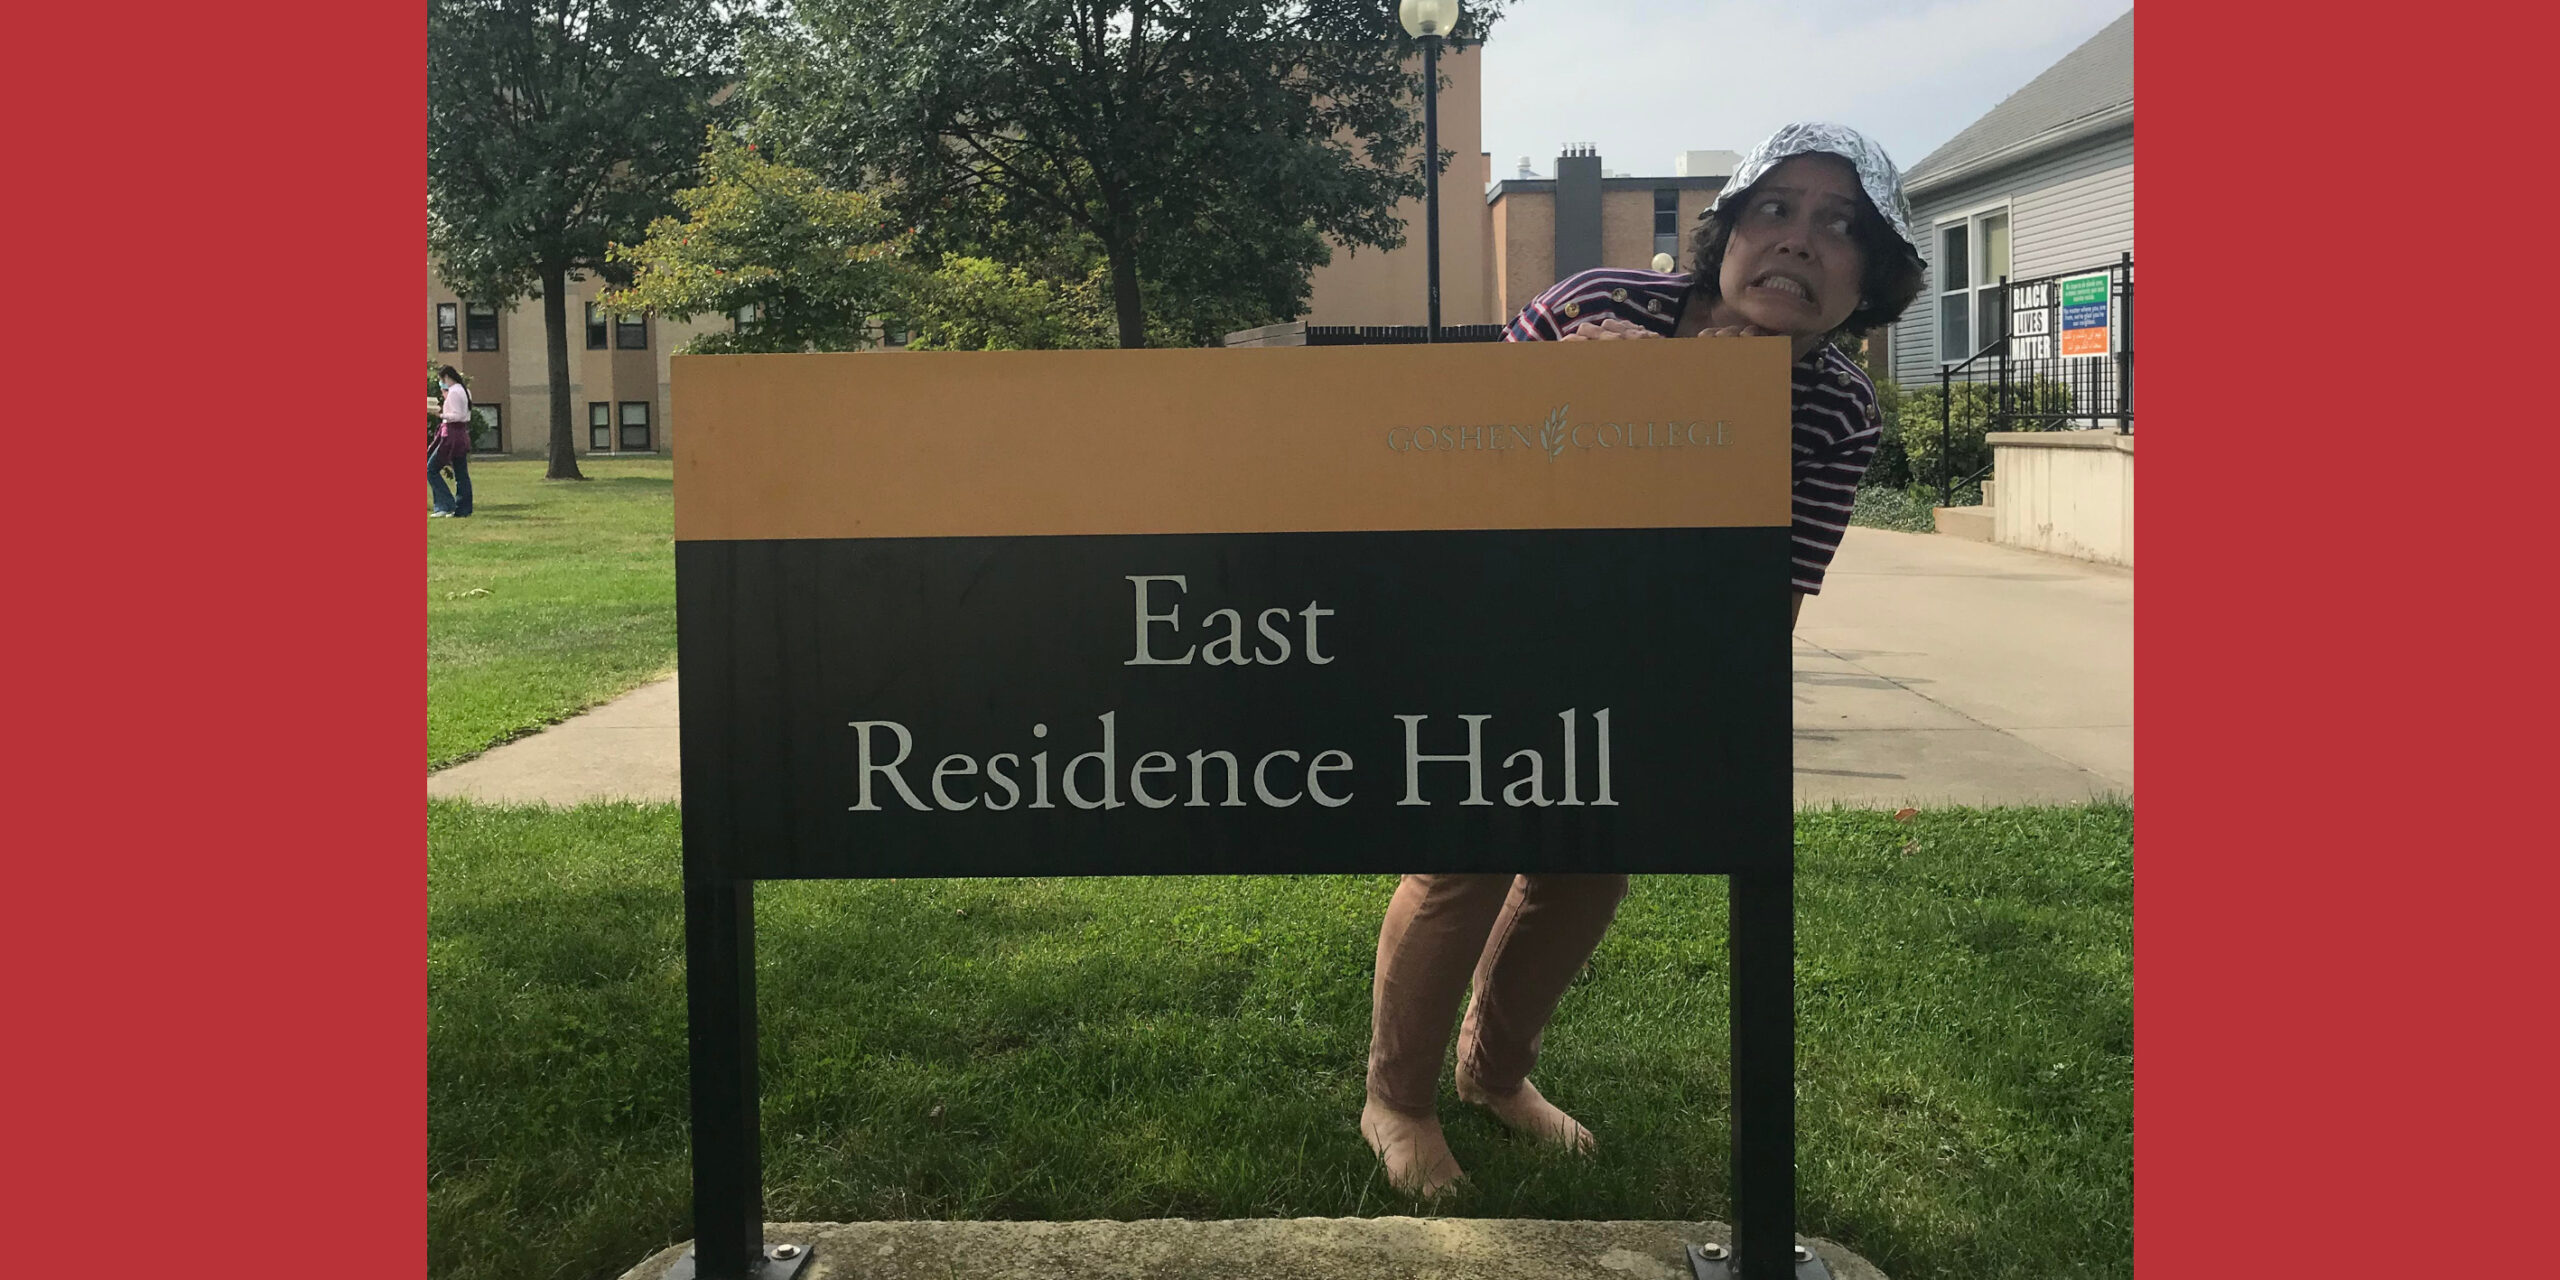 Kristin Jantzen makes a funny face behind the East Residence Hall sign